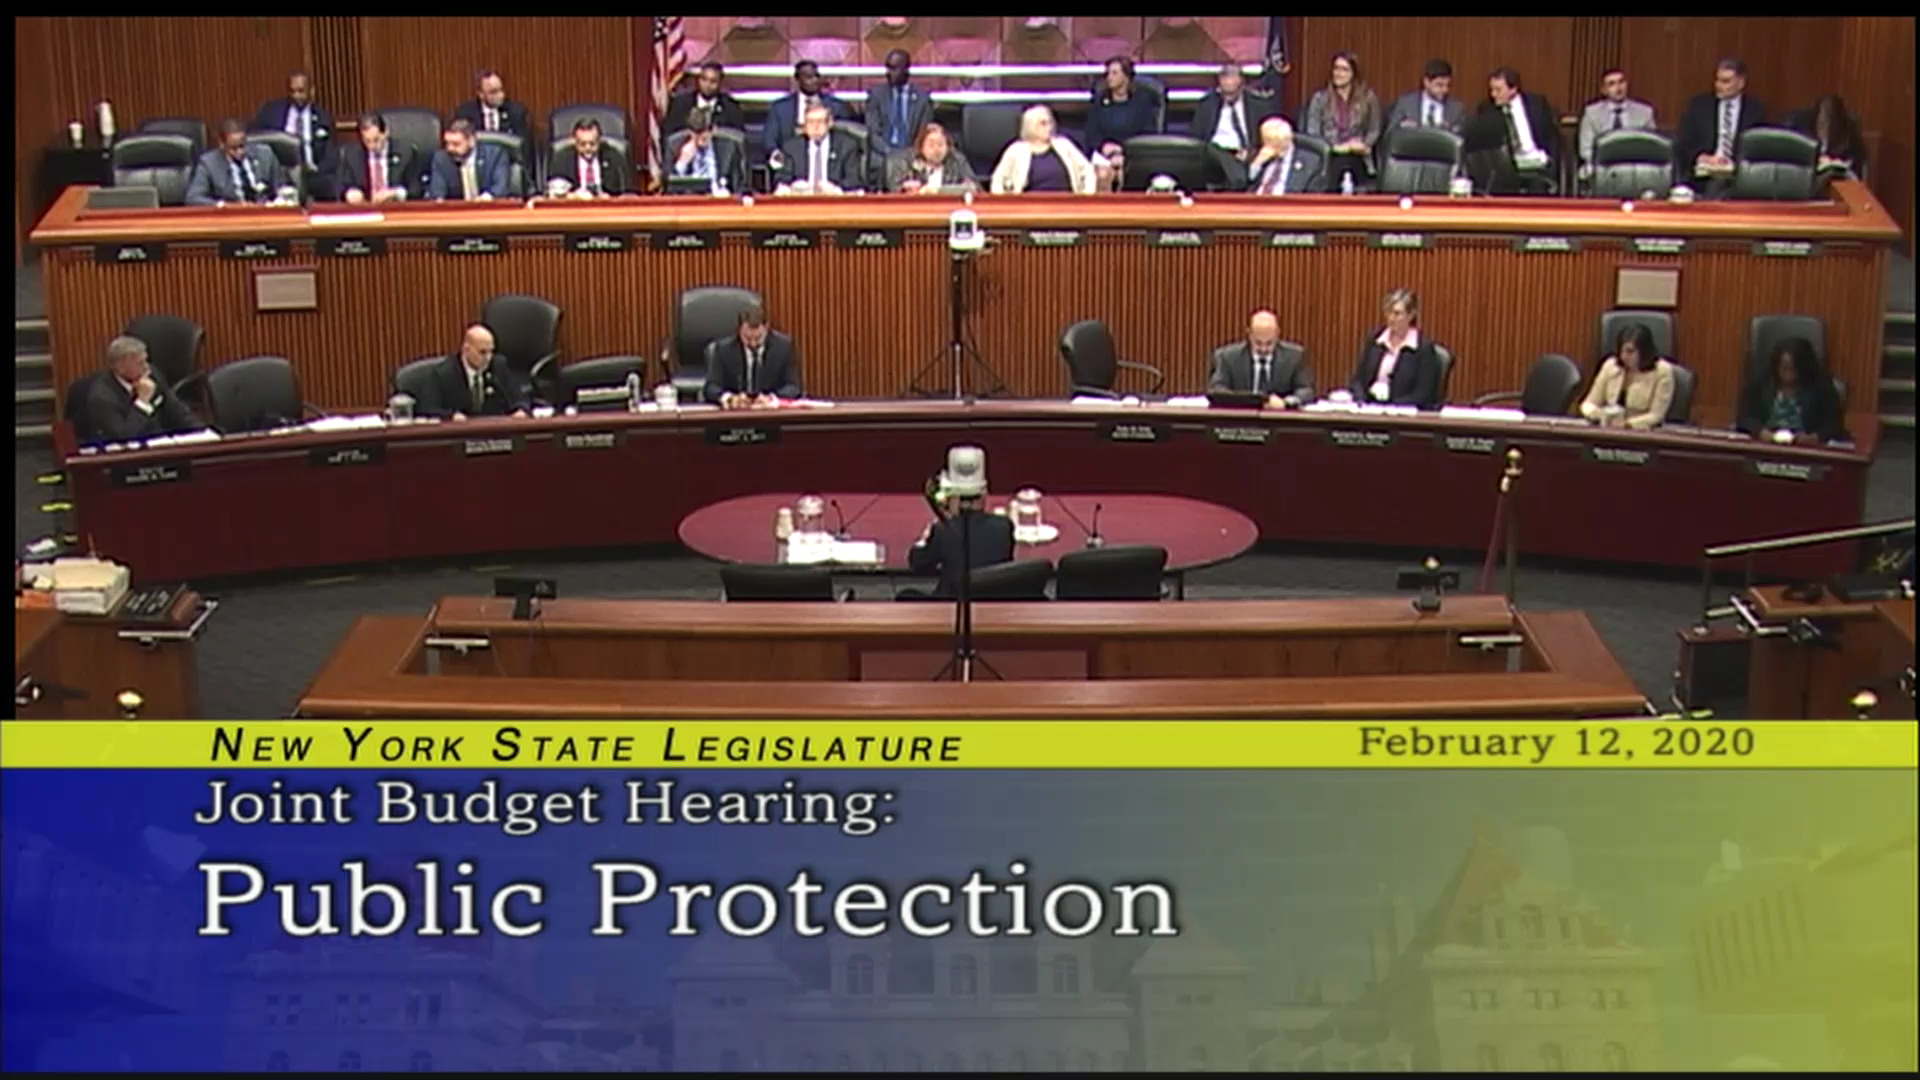 2020 Joint Budget Hearing on Public Protection